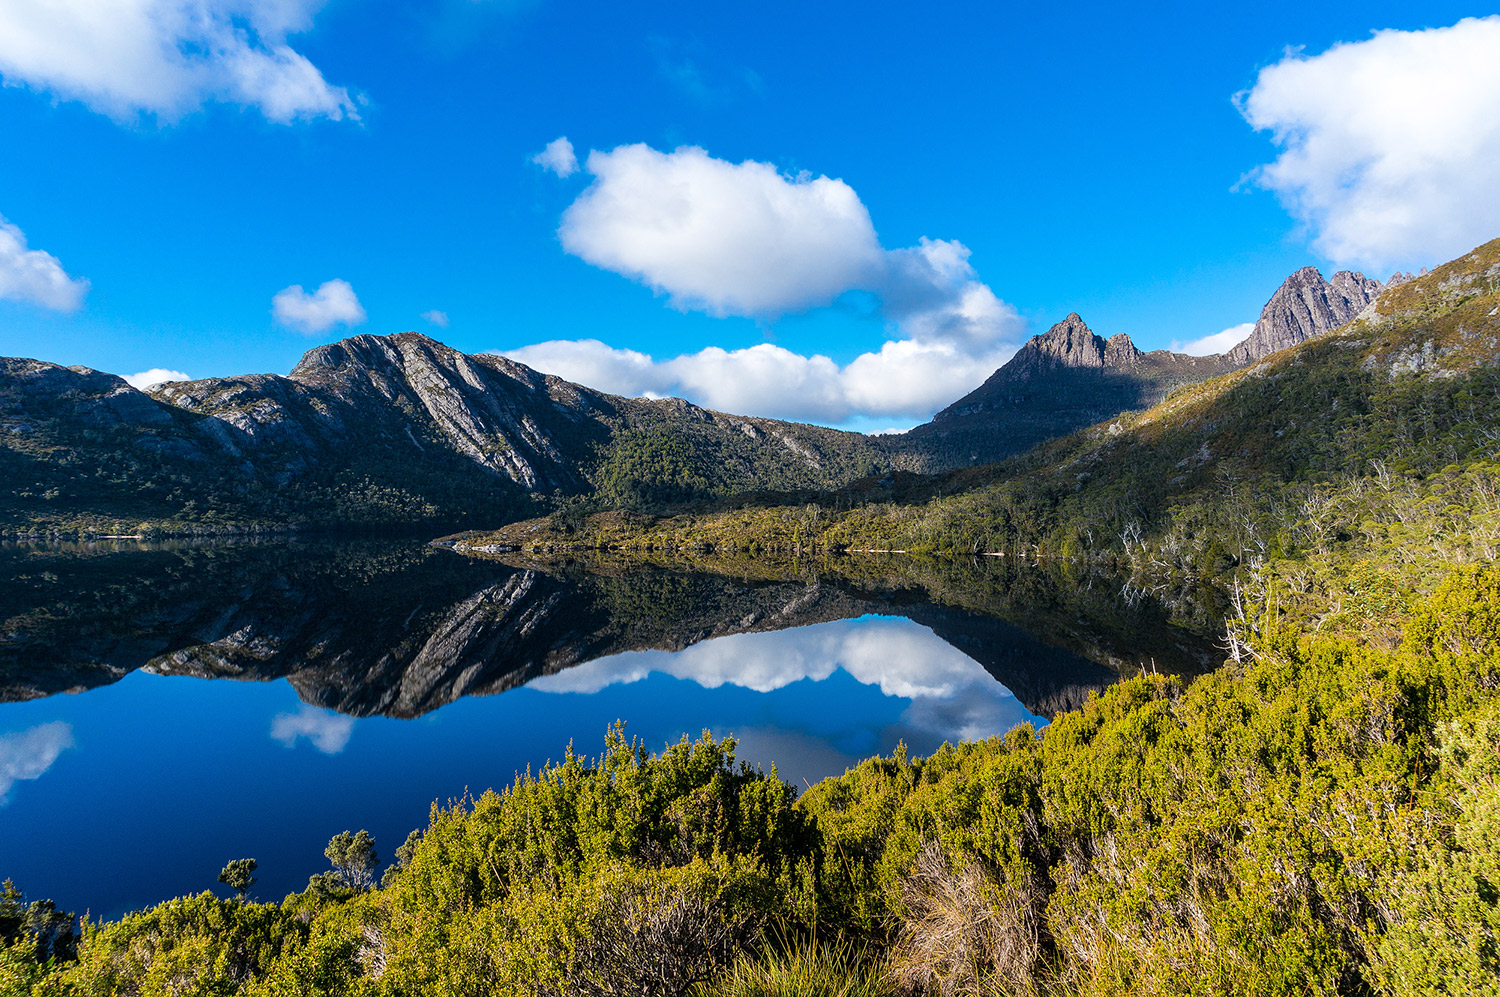 Cradle Mountain Nationalpark, von Olga Kashubin / Shutterstock